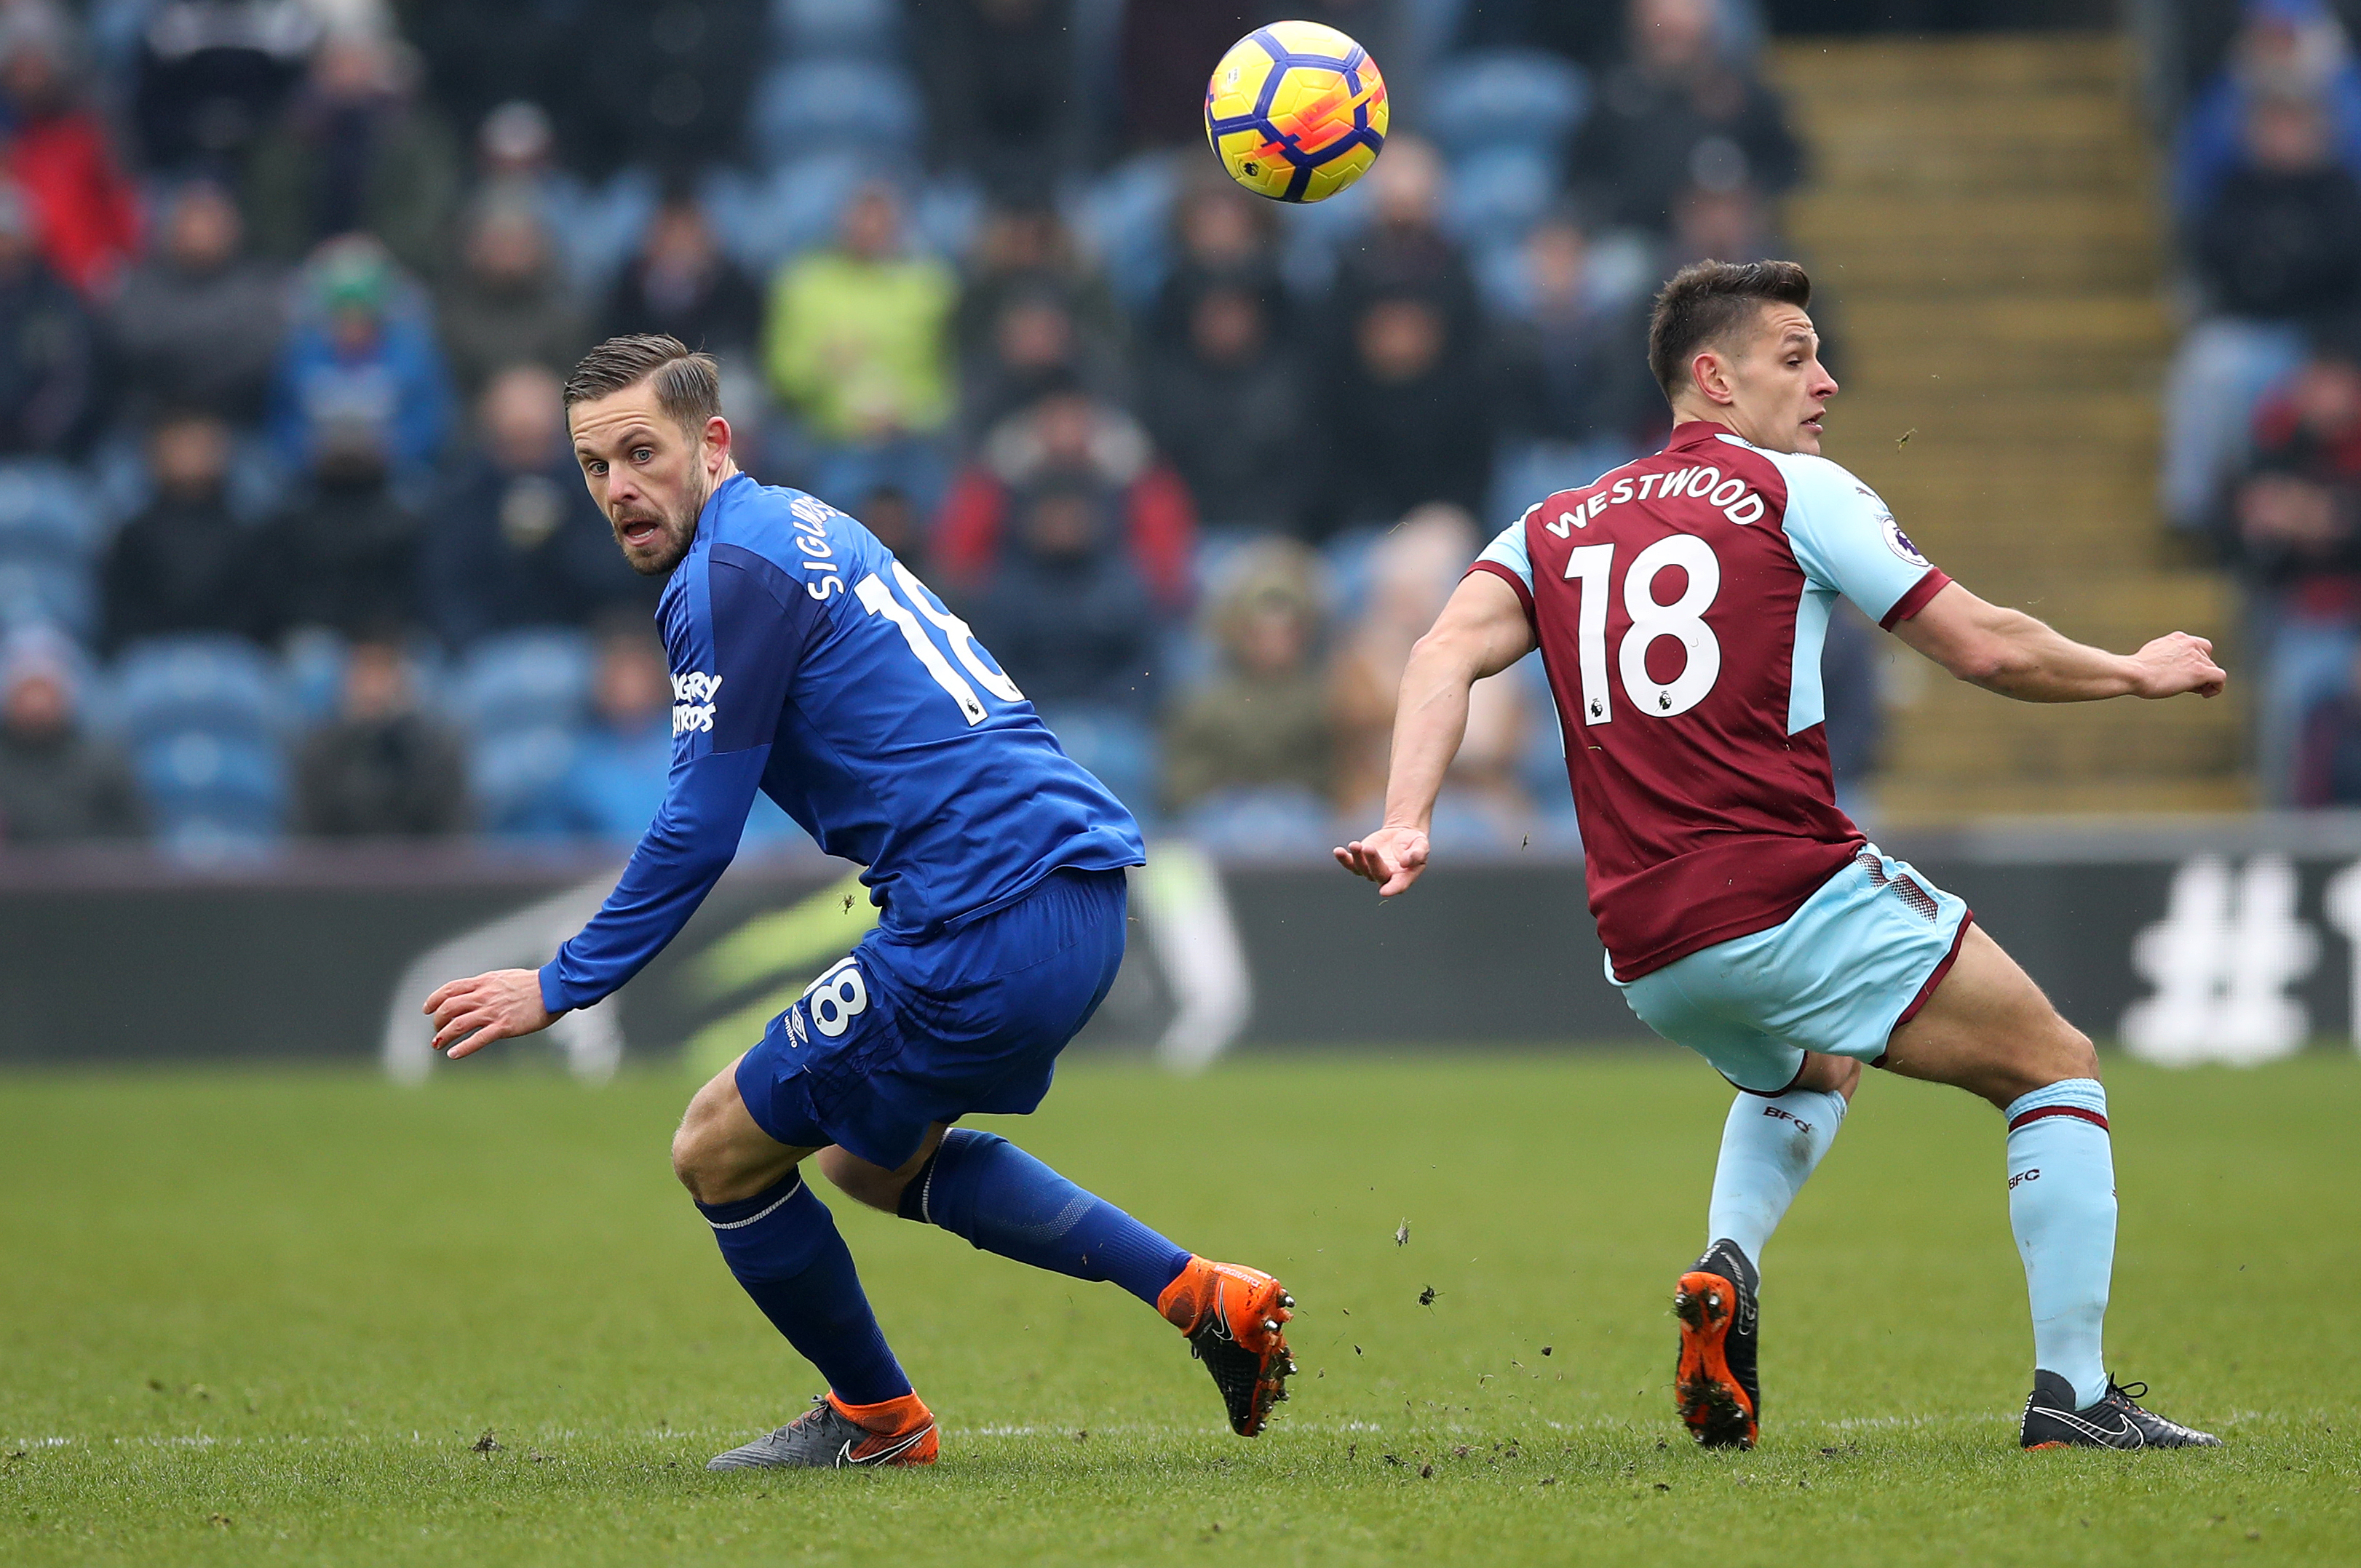 Burnley End Winless Streak With Comeback Victory Over Everton